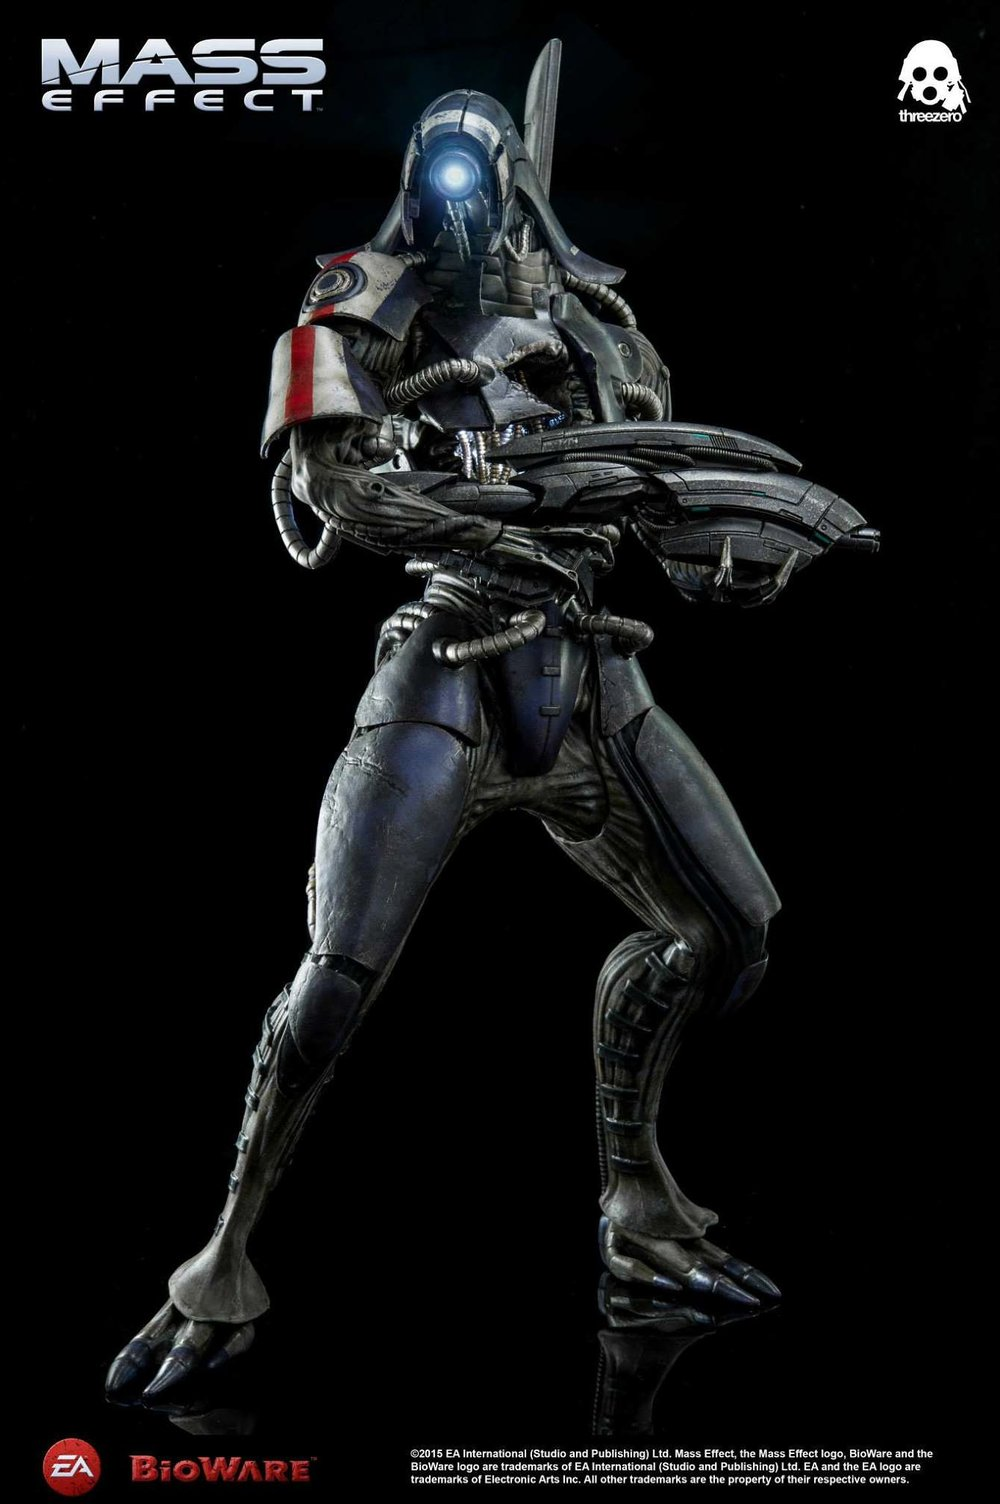 ThreeZero-Bioware-video-game-Legion-Mass-Effect-figure-16_1340_c.jpg